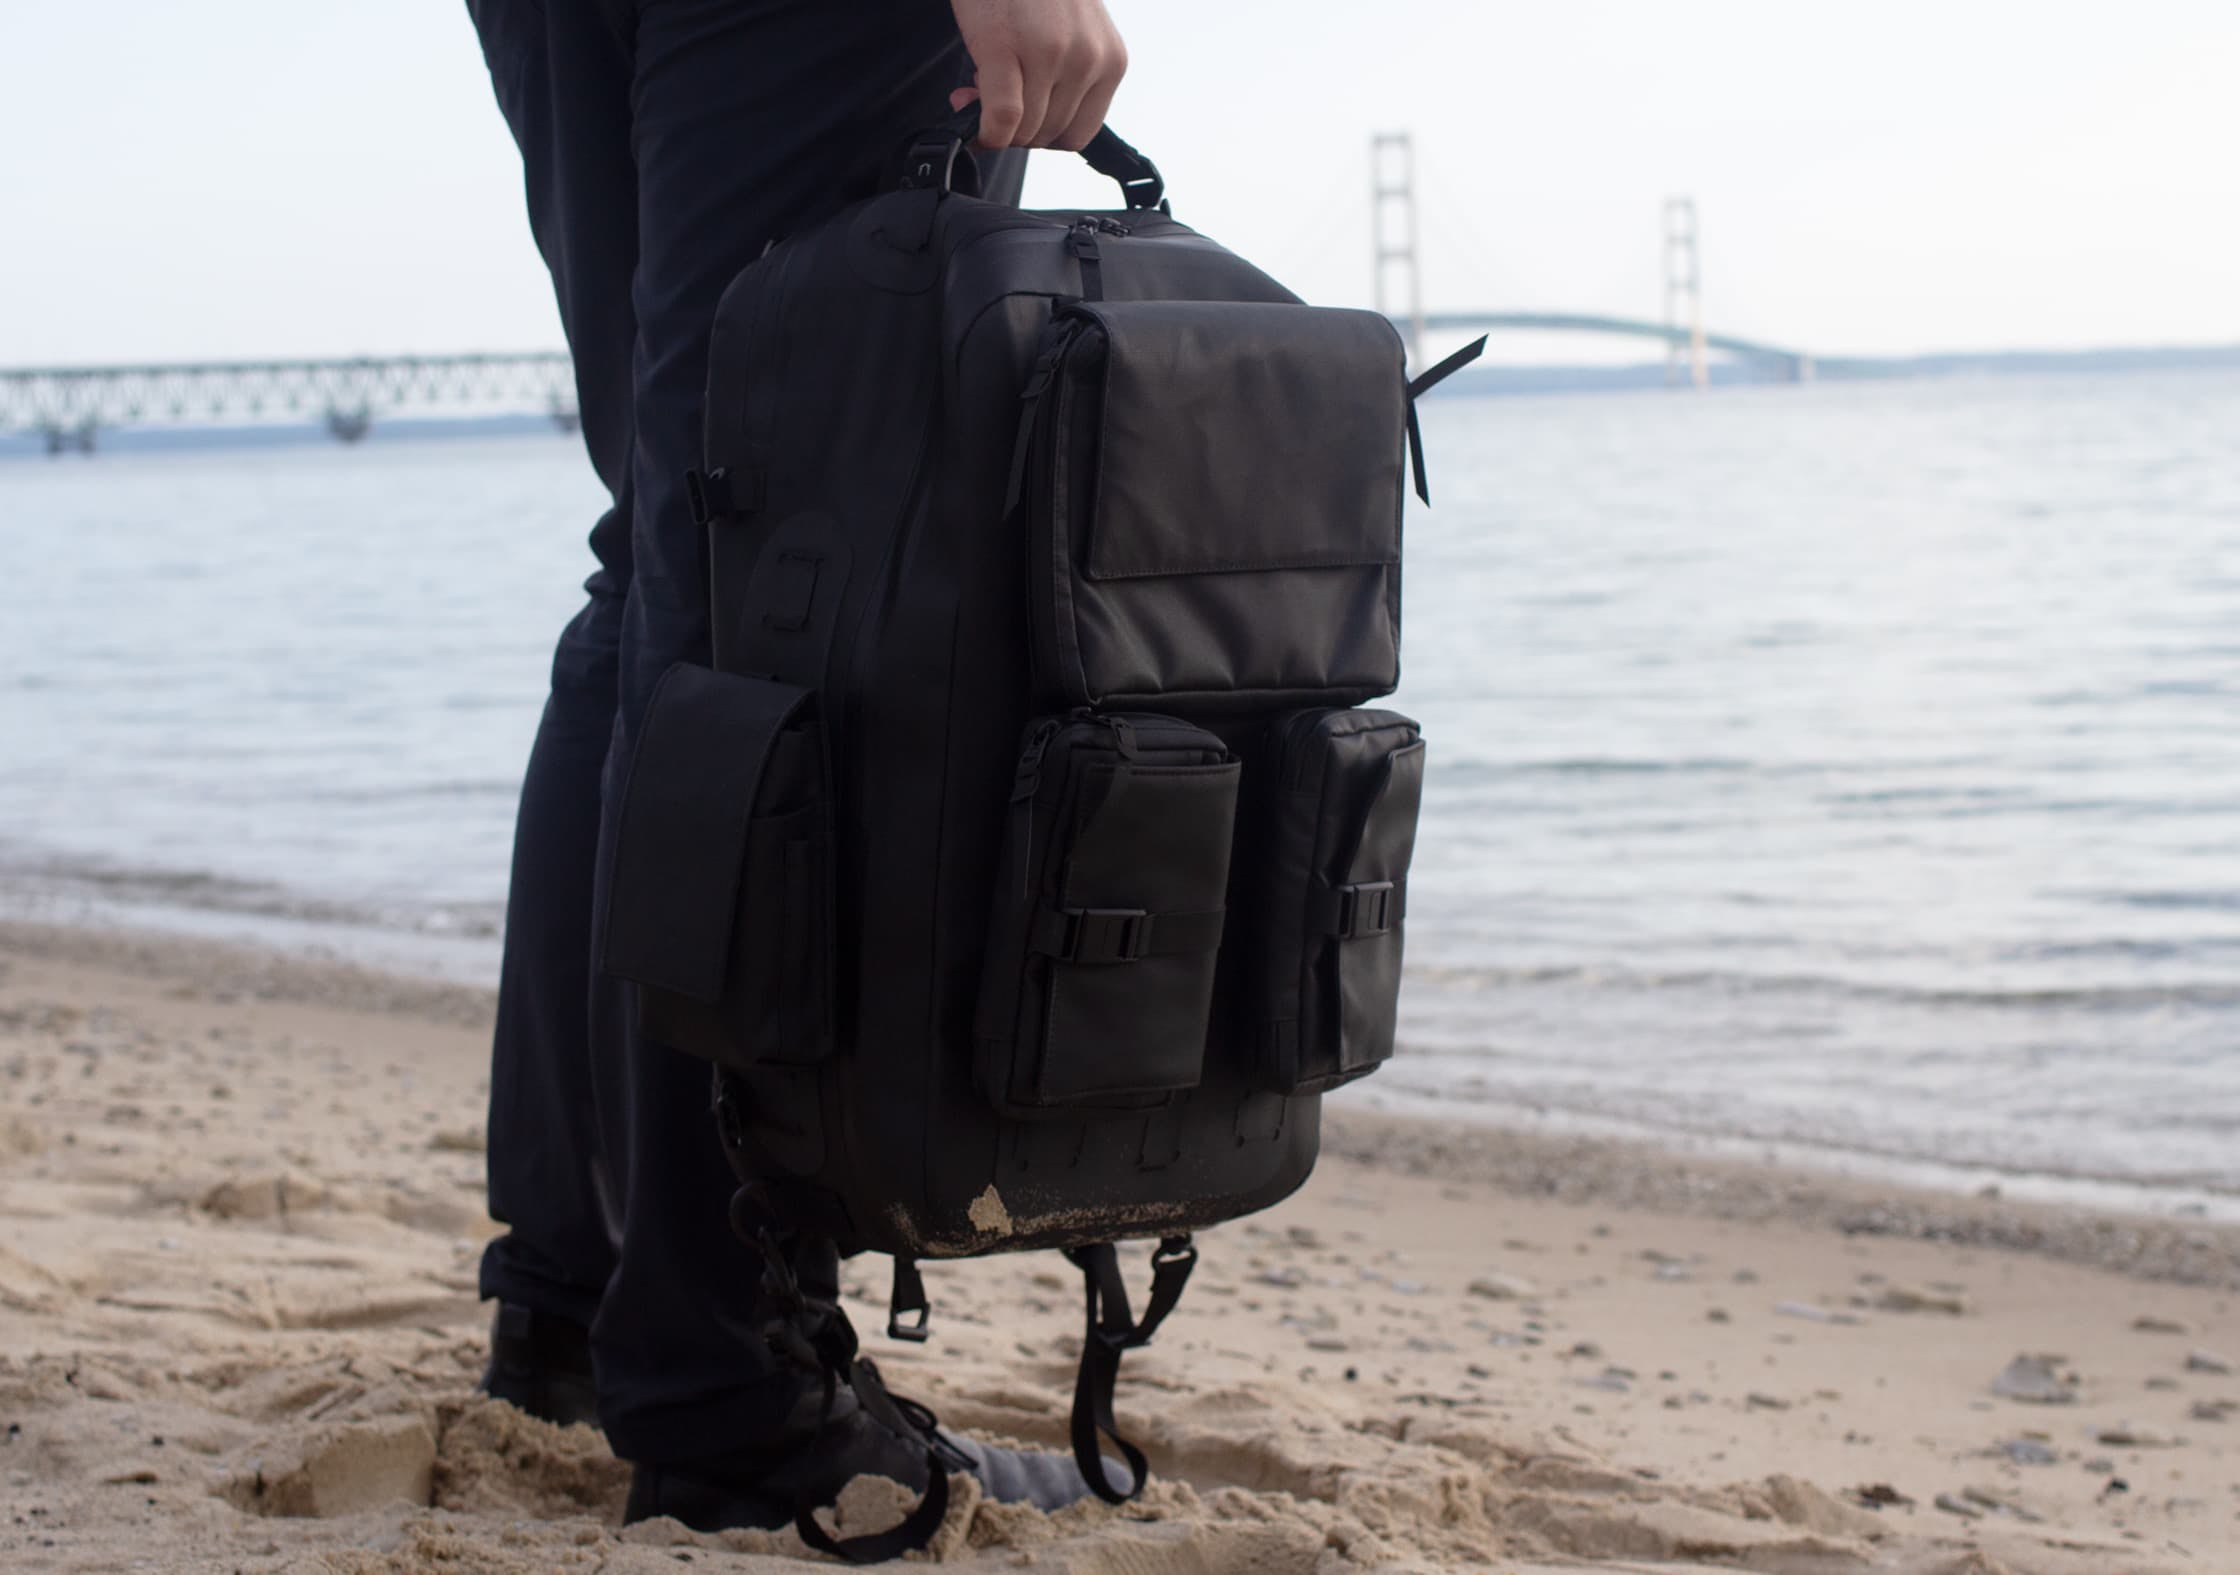 Black Ember Citadel Modular Backpack at Lake Michigan